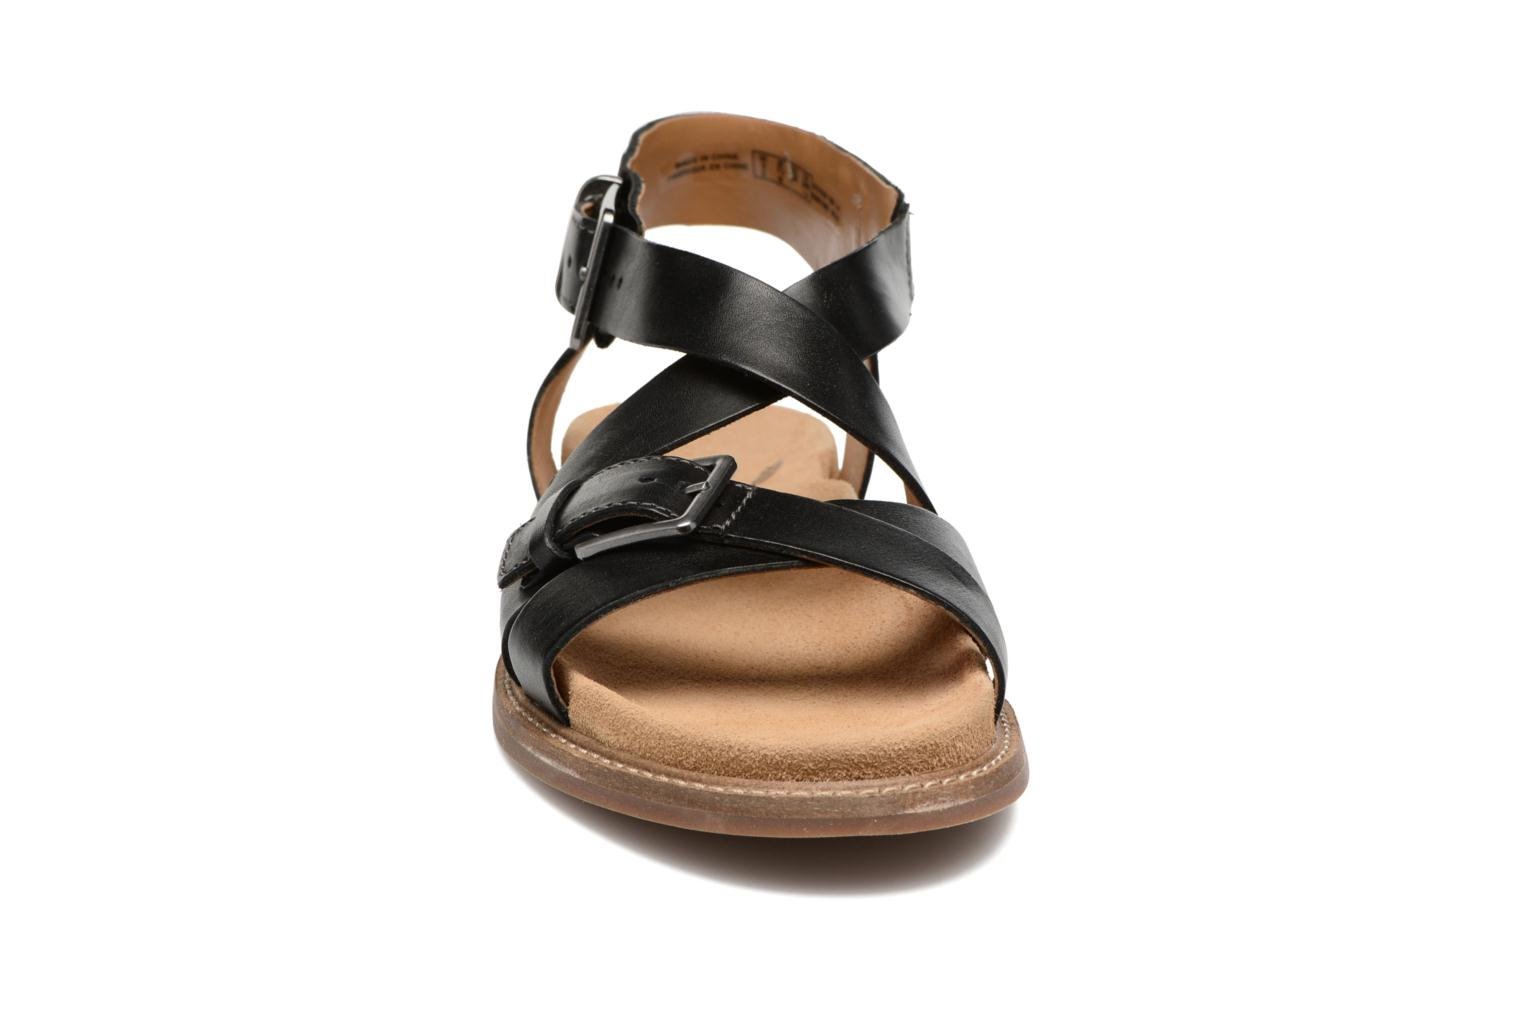 Corsio Bambi Black leather